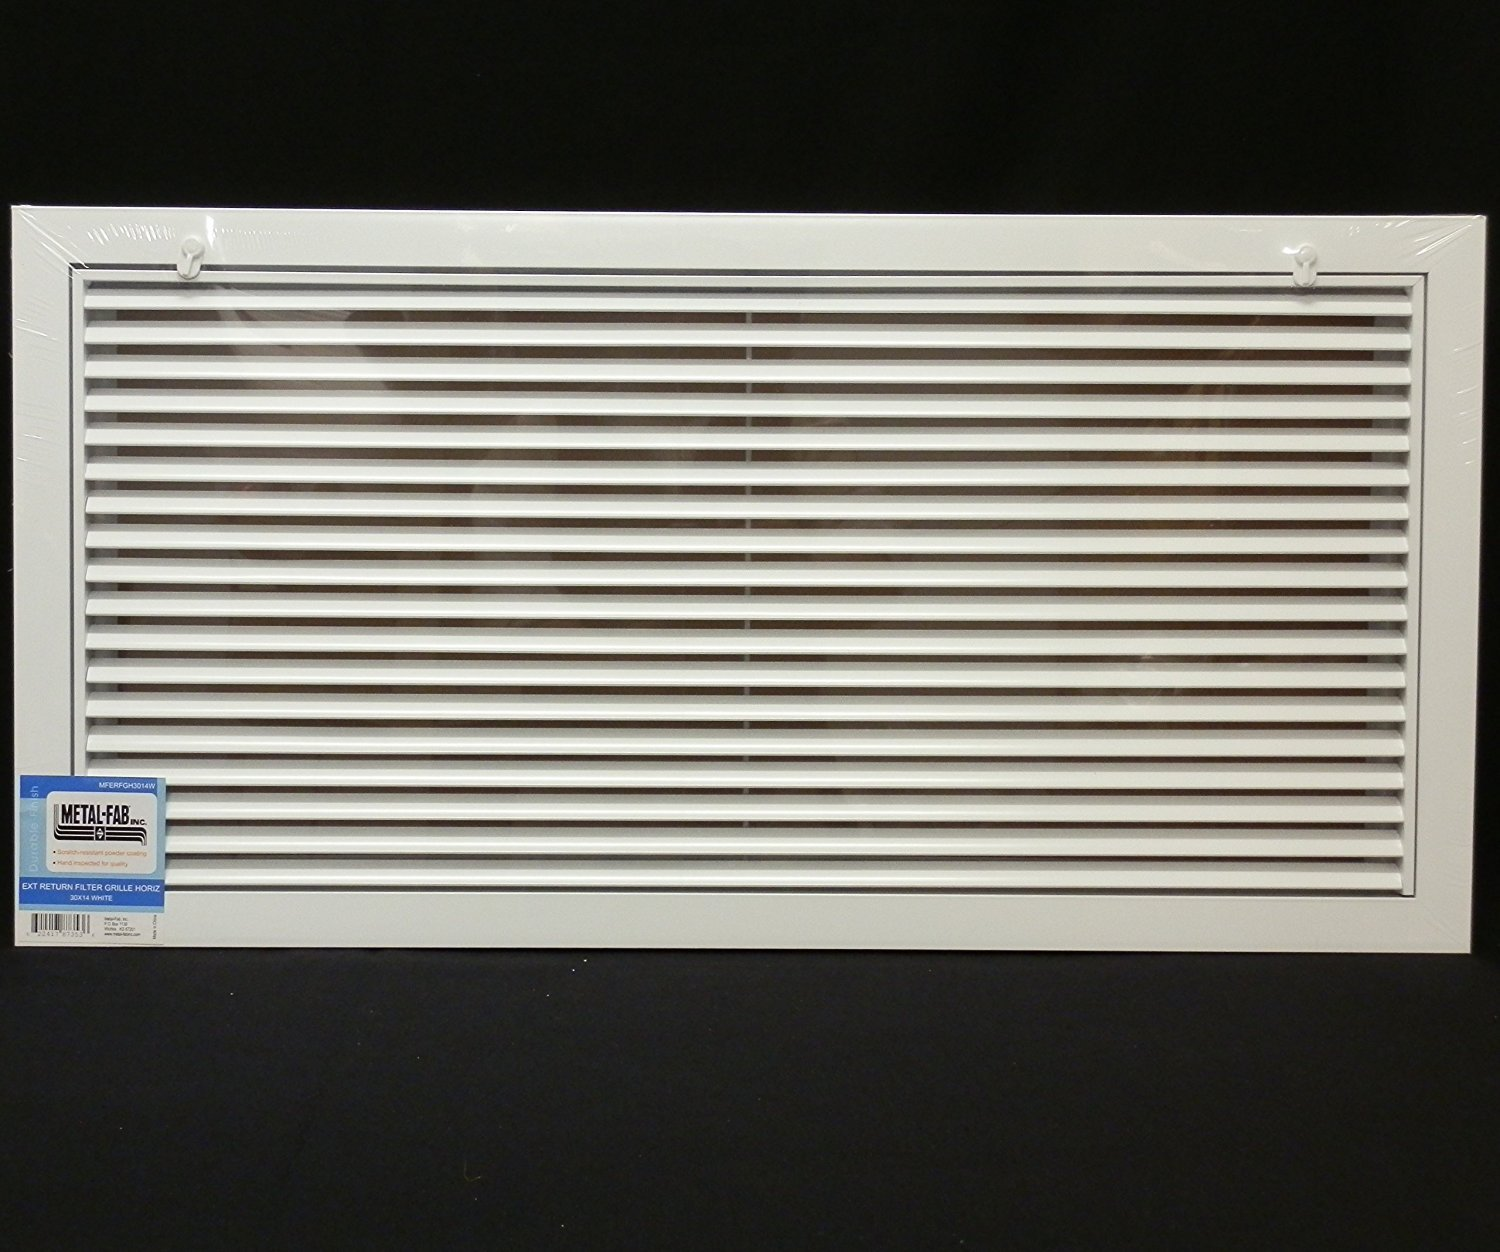 30'' x 20'' Aluminum Return Filter Grille - Easy Air FLow - Linear Bar Grilles [Outer Dimensions: 32.5''w X 22.5''h] by HVAC Premium